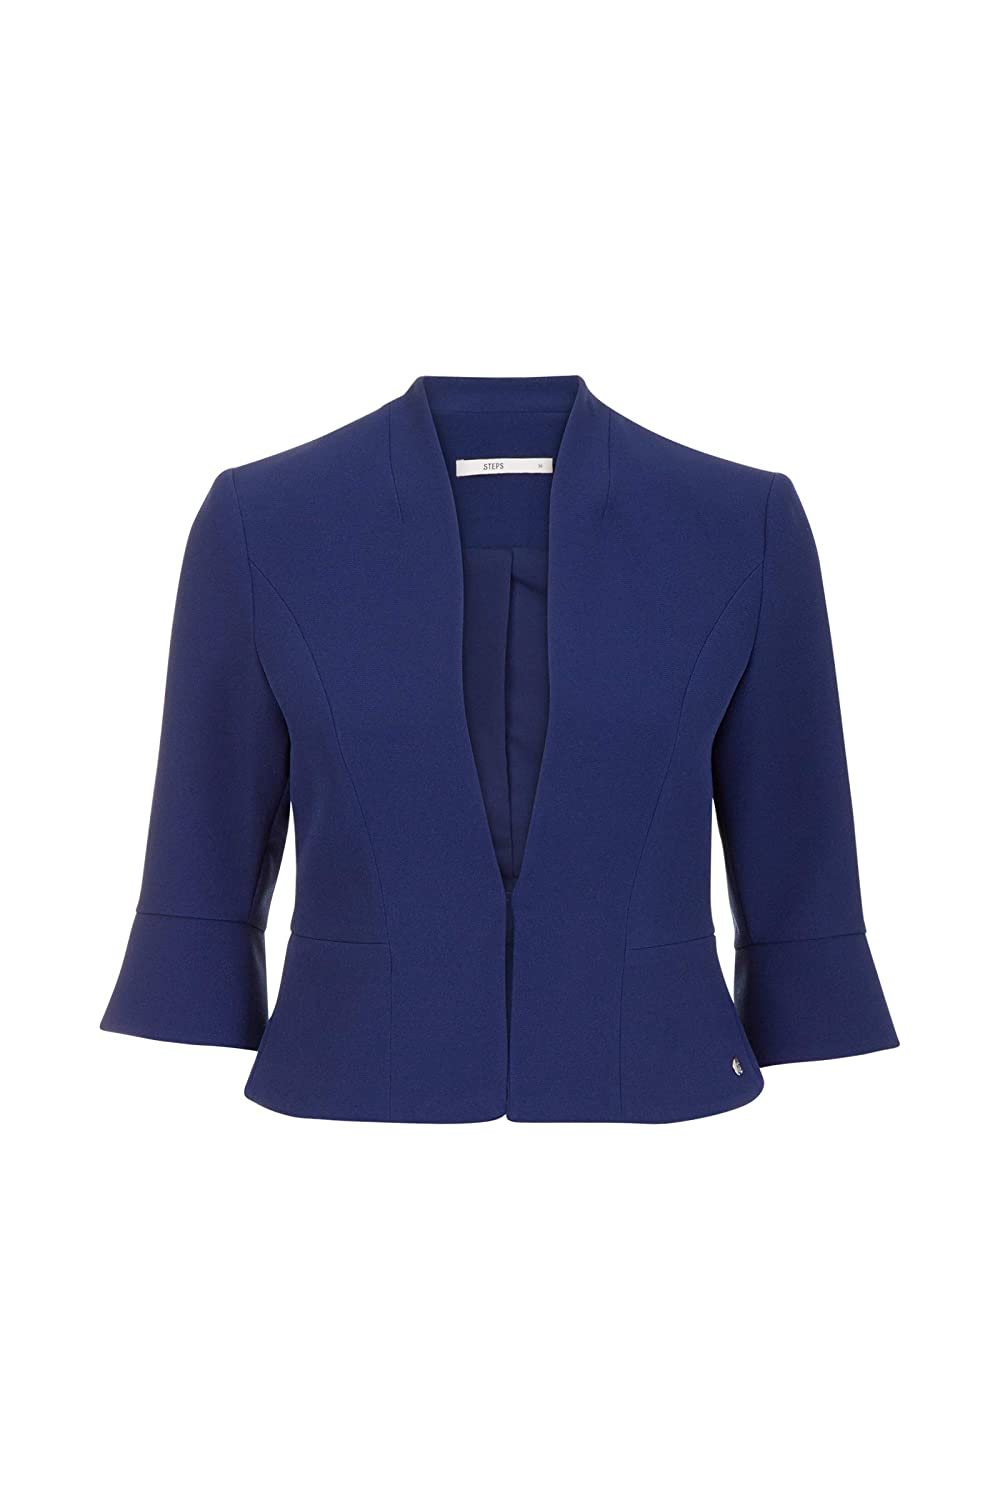 Steps Damen Blazer Einfarbig Modisch Business